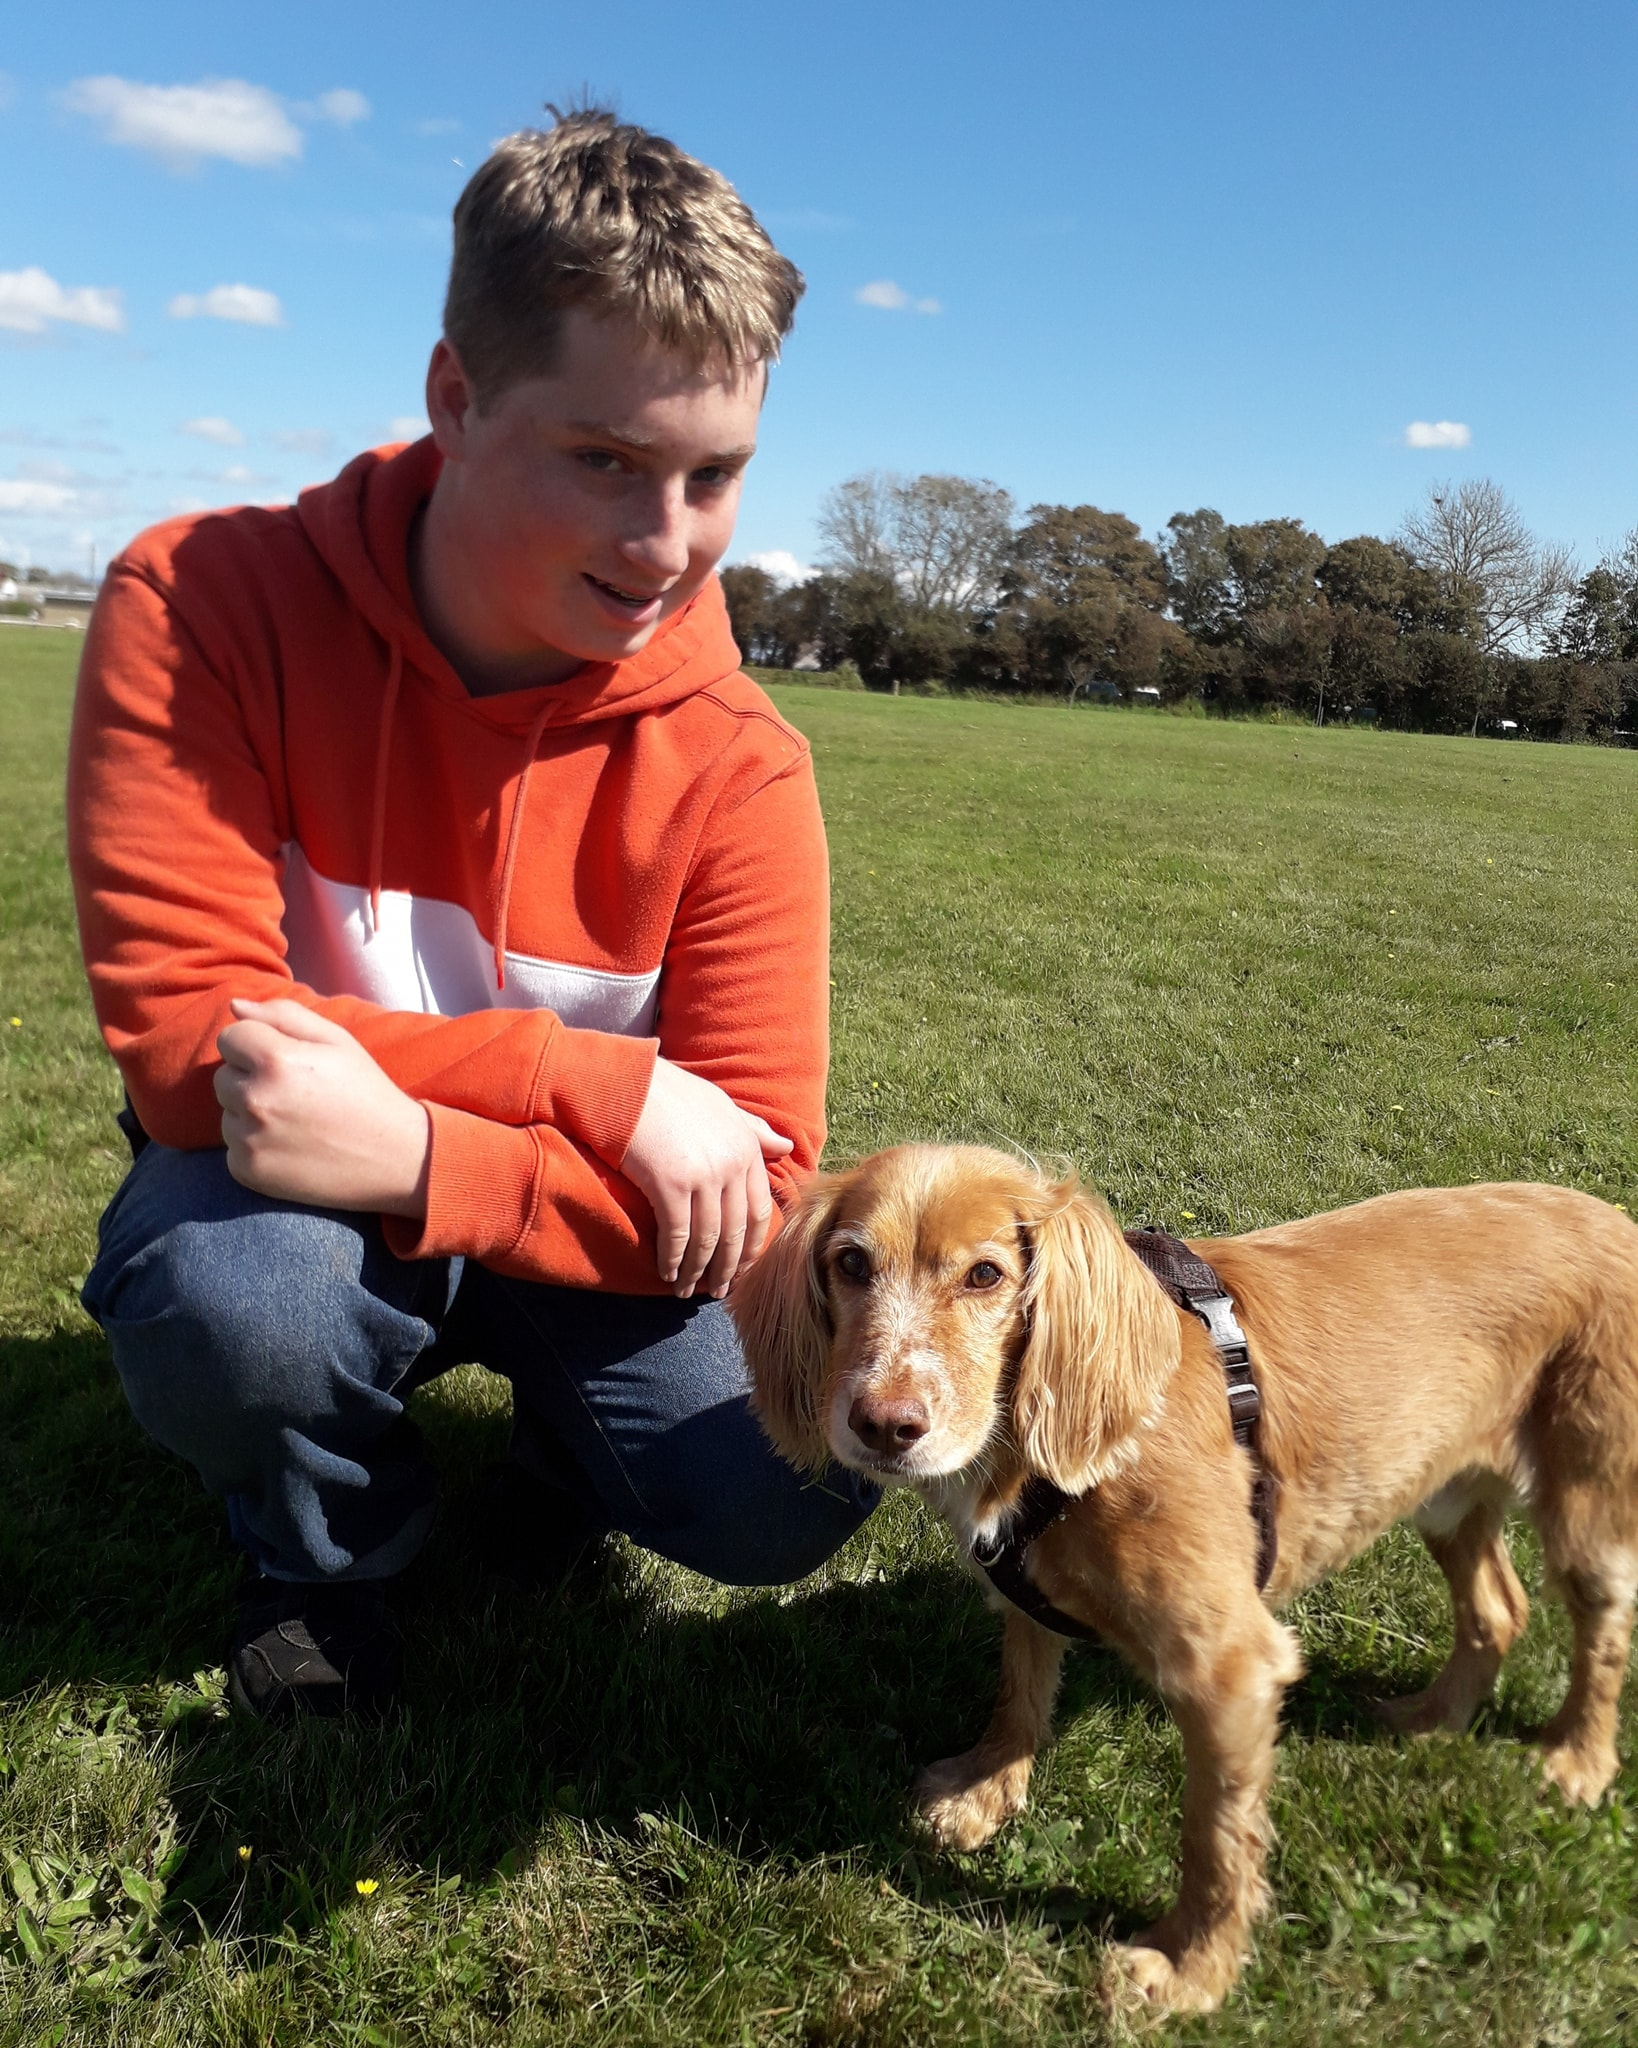 Volunteer with Dogs - SPPOT, Haverfordwest